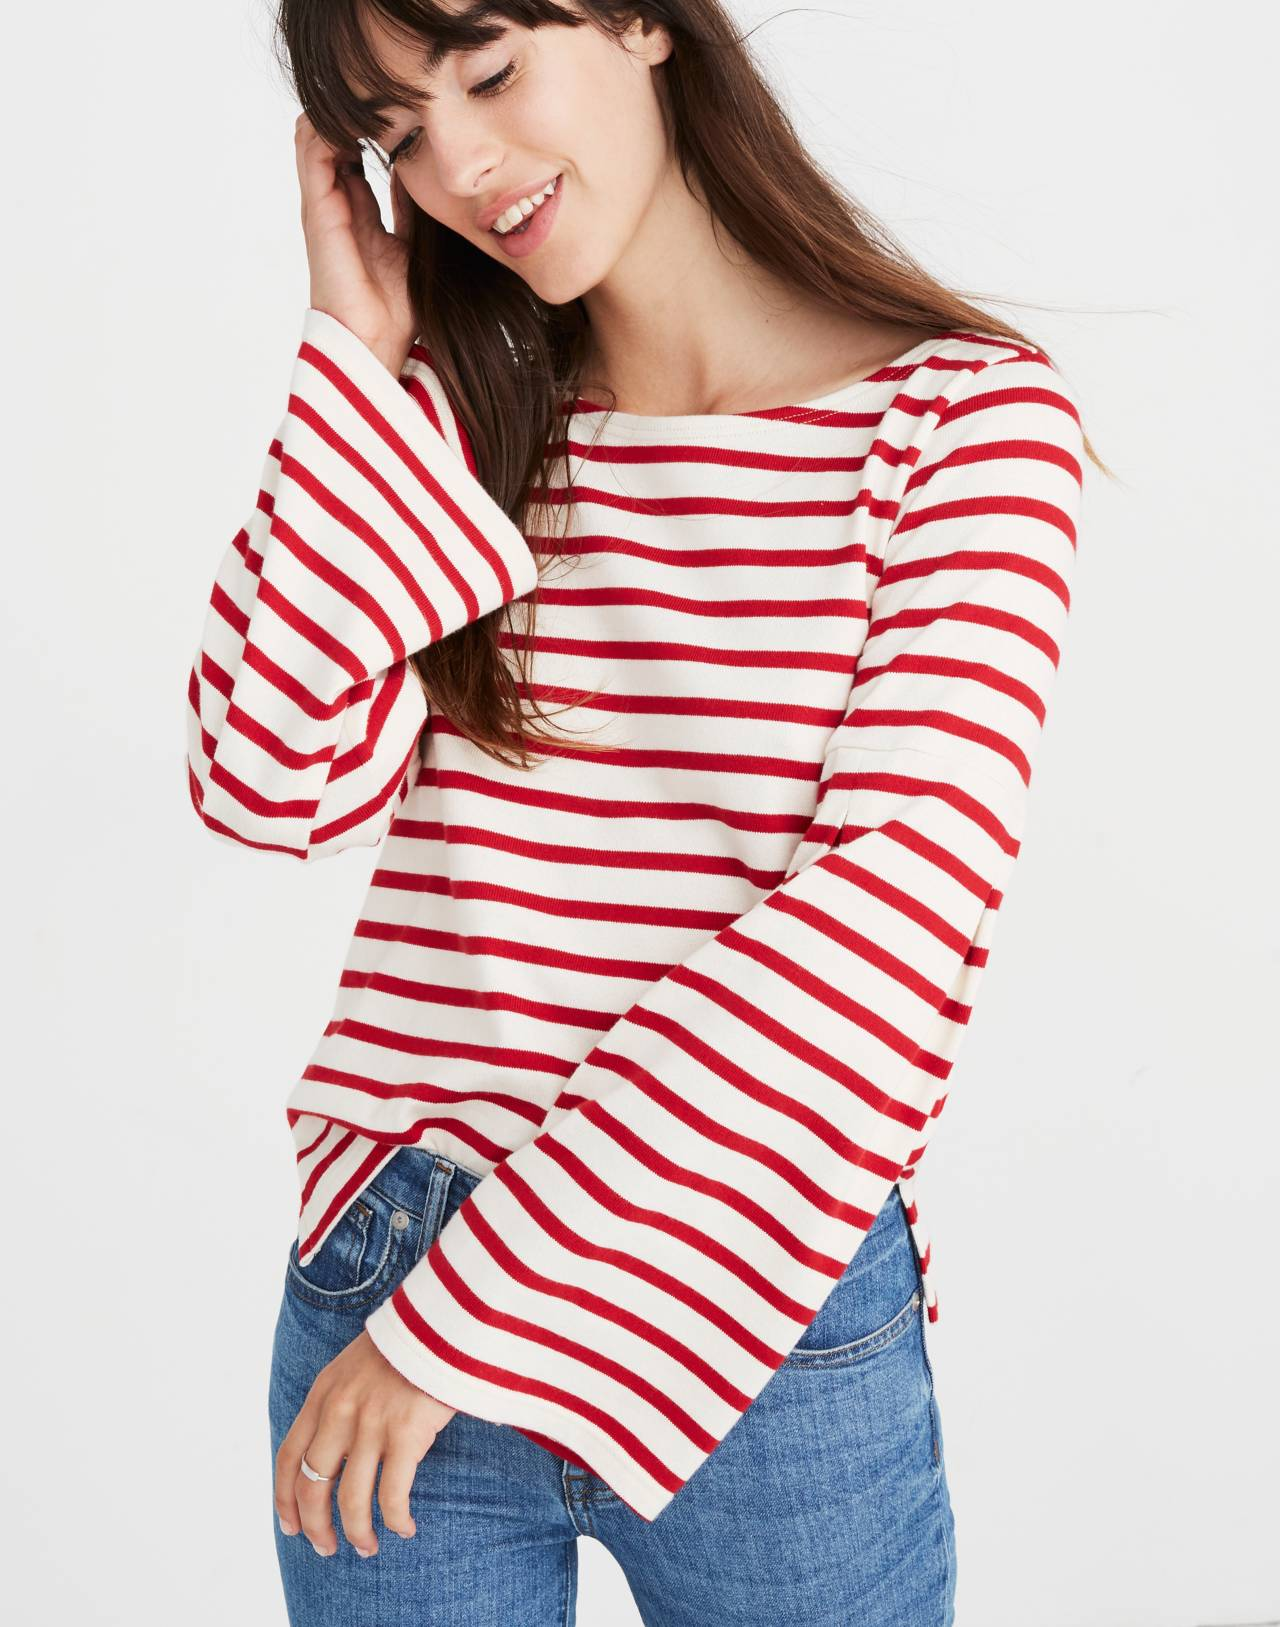 Madewell x Armor-Lux® Flare-Sleeve Striped Top in red creme stripe image 3